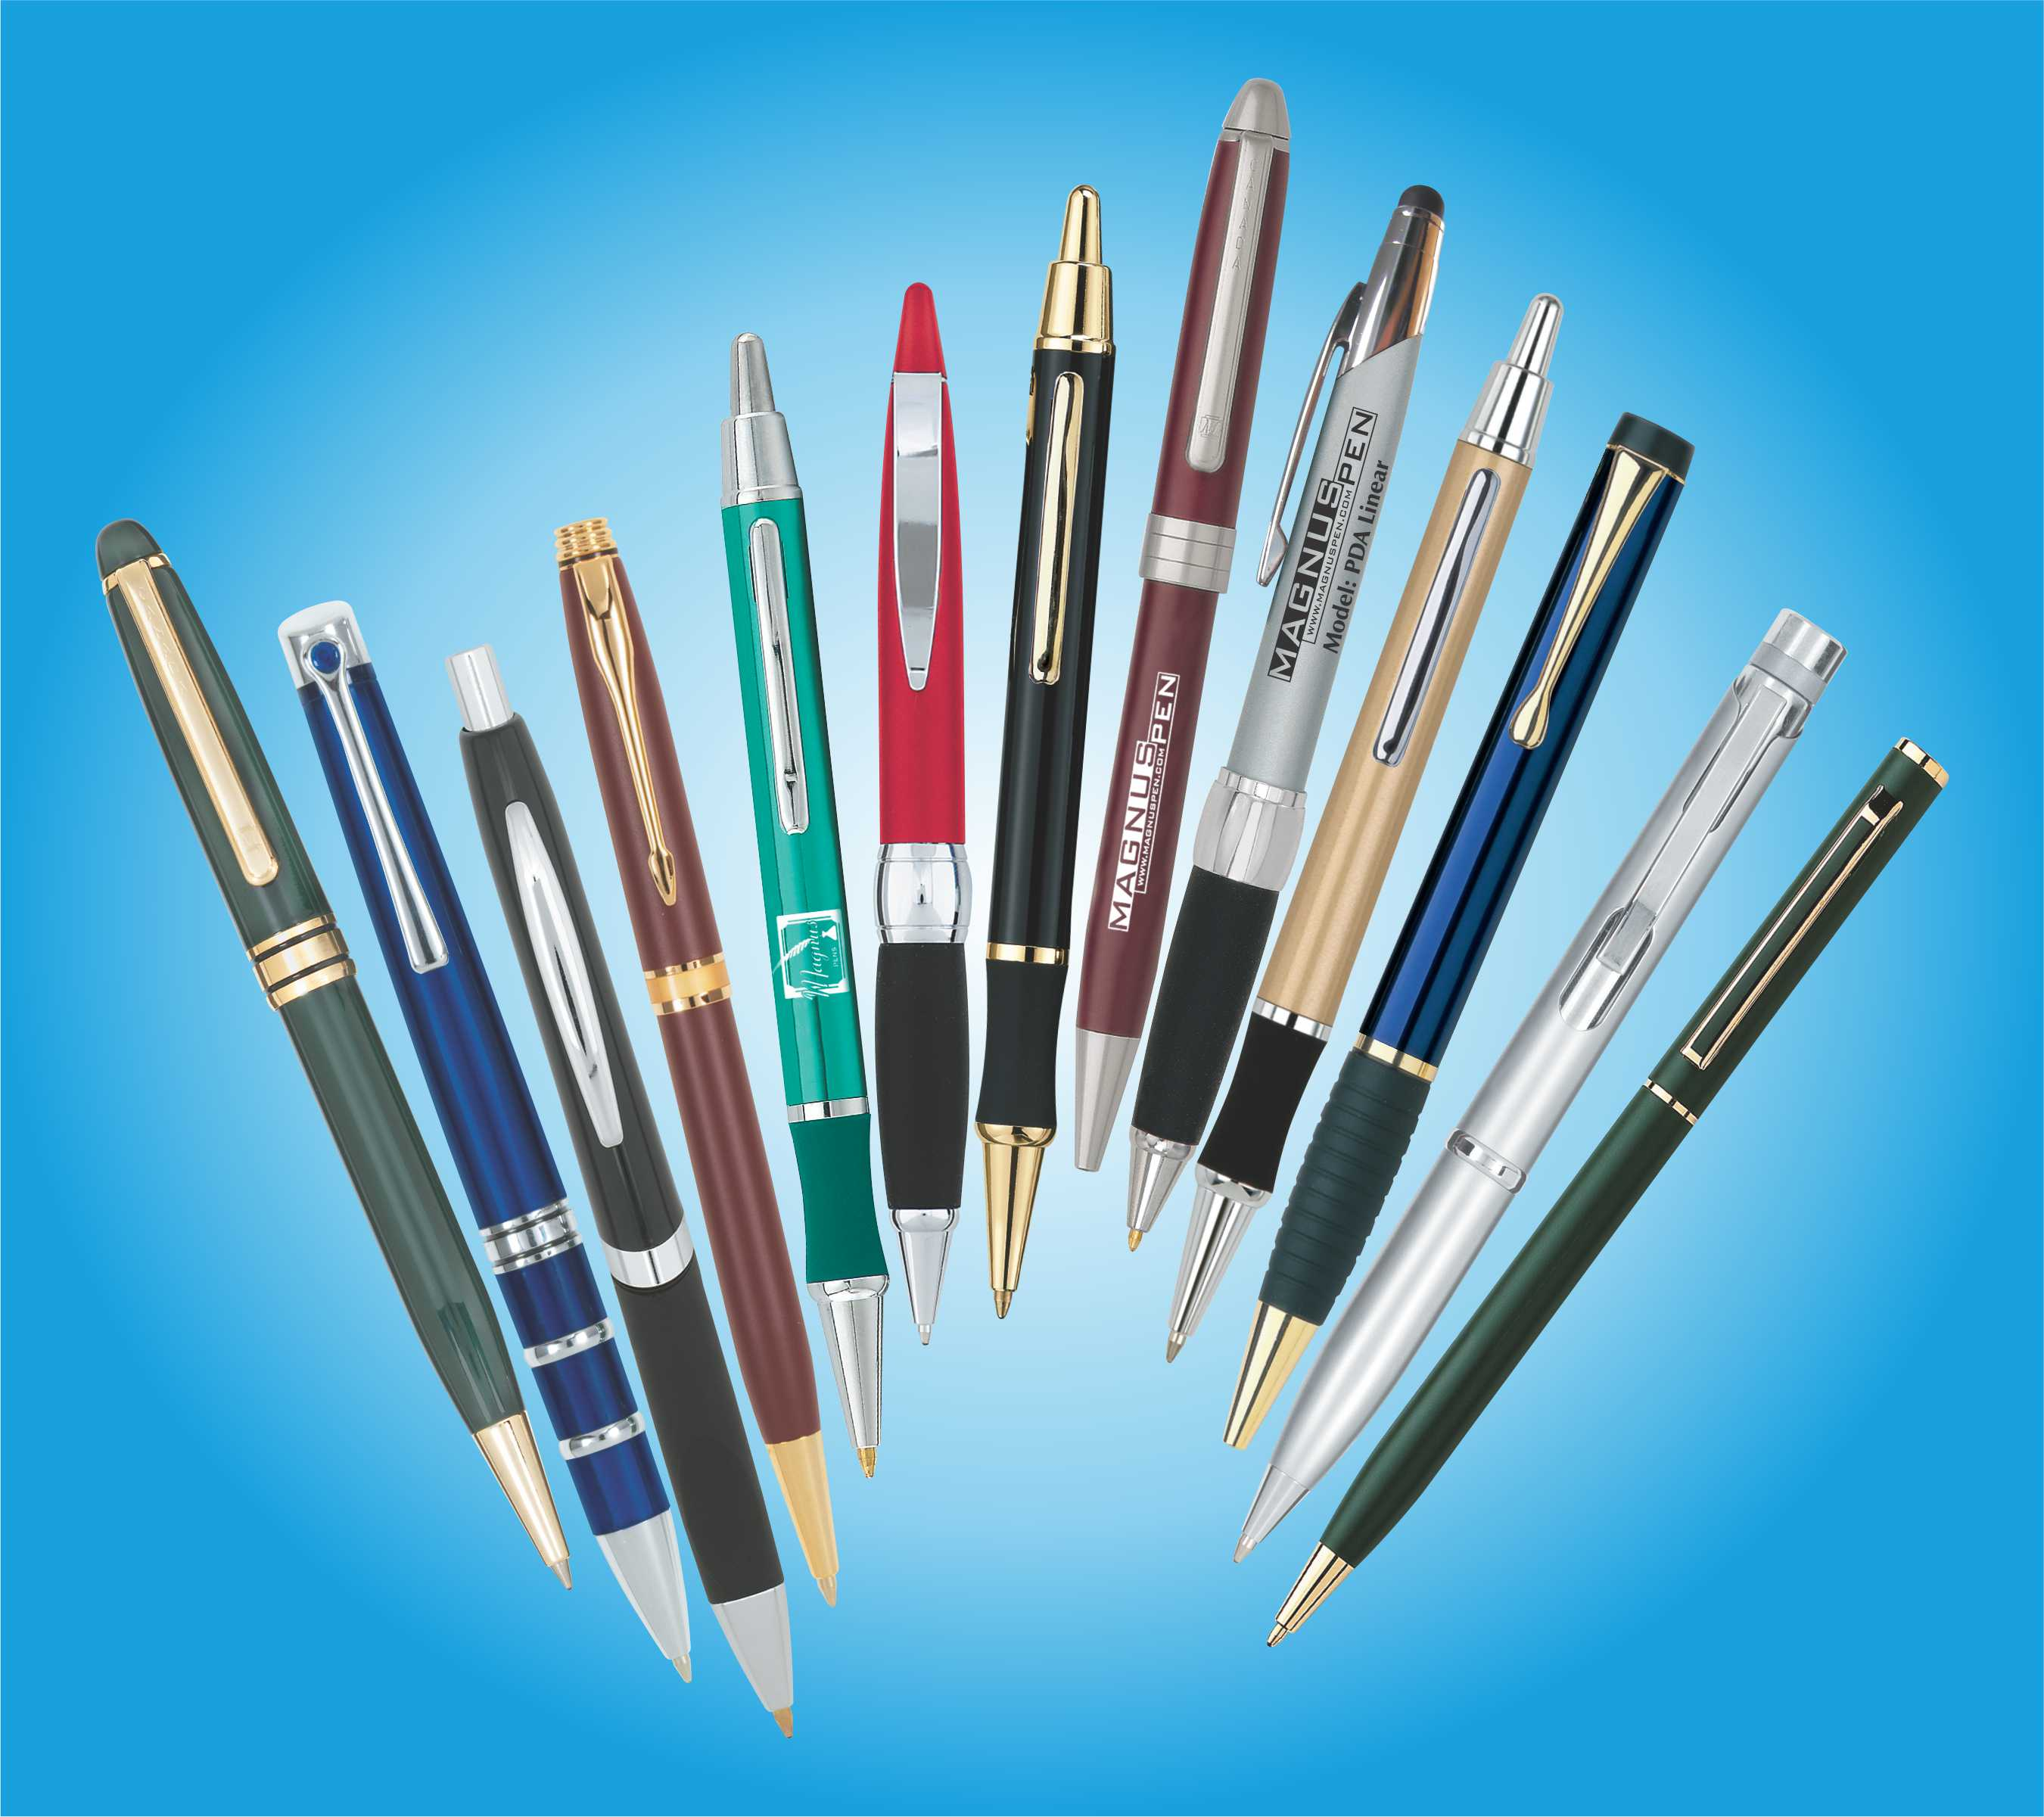 Metal Pens are a popular choice as promotional pens